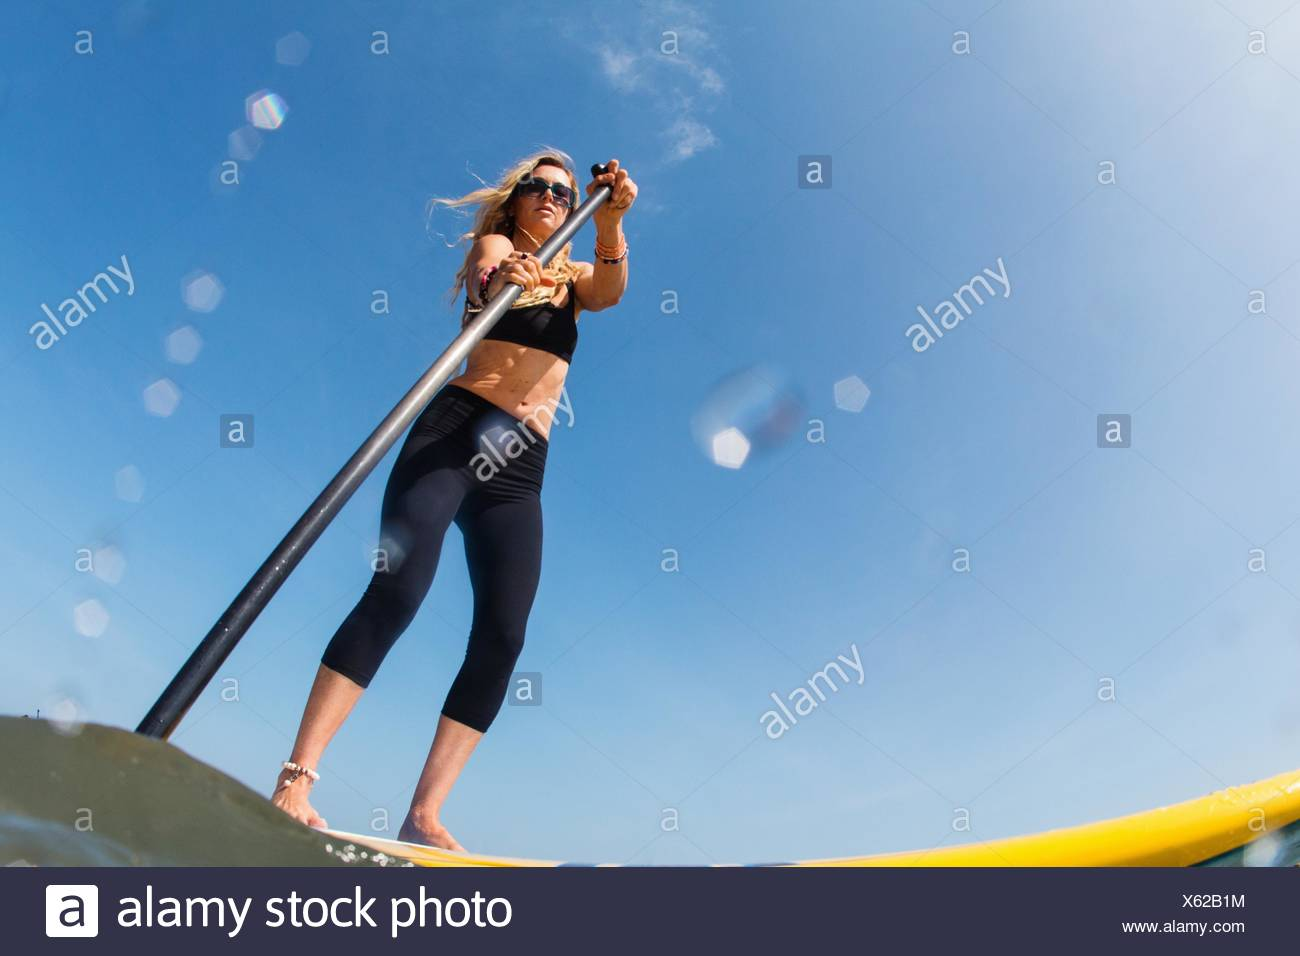 Low angle view of mid adult woman standup paddleboarding - Stock Image